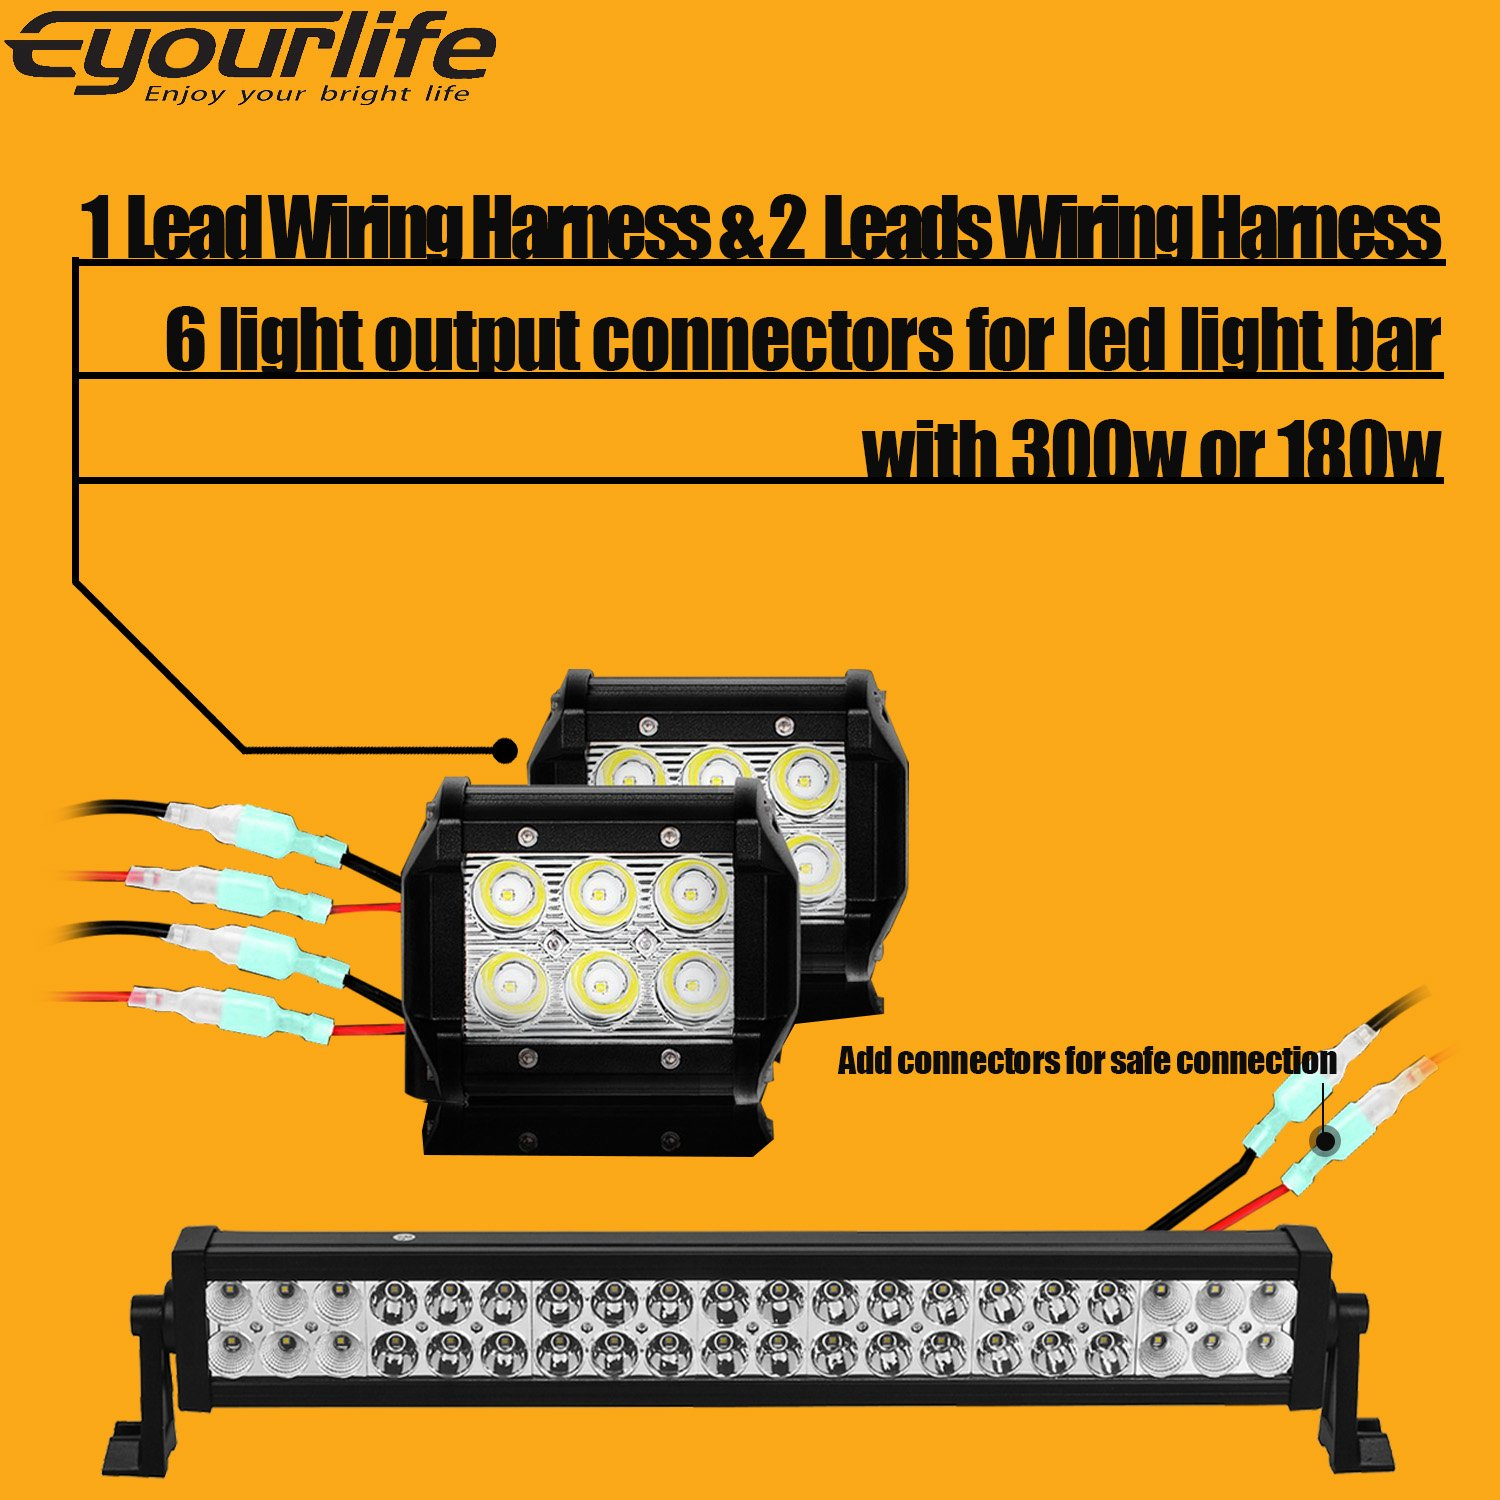 Eyourlife Led Light Bar Wiring Harness 2pcs 2 Leads For Heavy Duty Suitable Hid Halogen And Bars 180w 12v 30a 1 Lead 300w 40a Fuse Relay On Off Switch 14awg 12ft Length